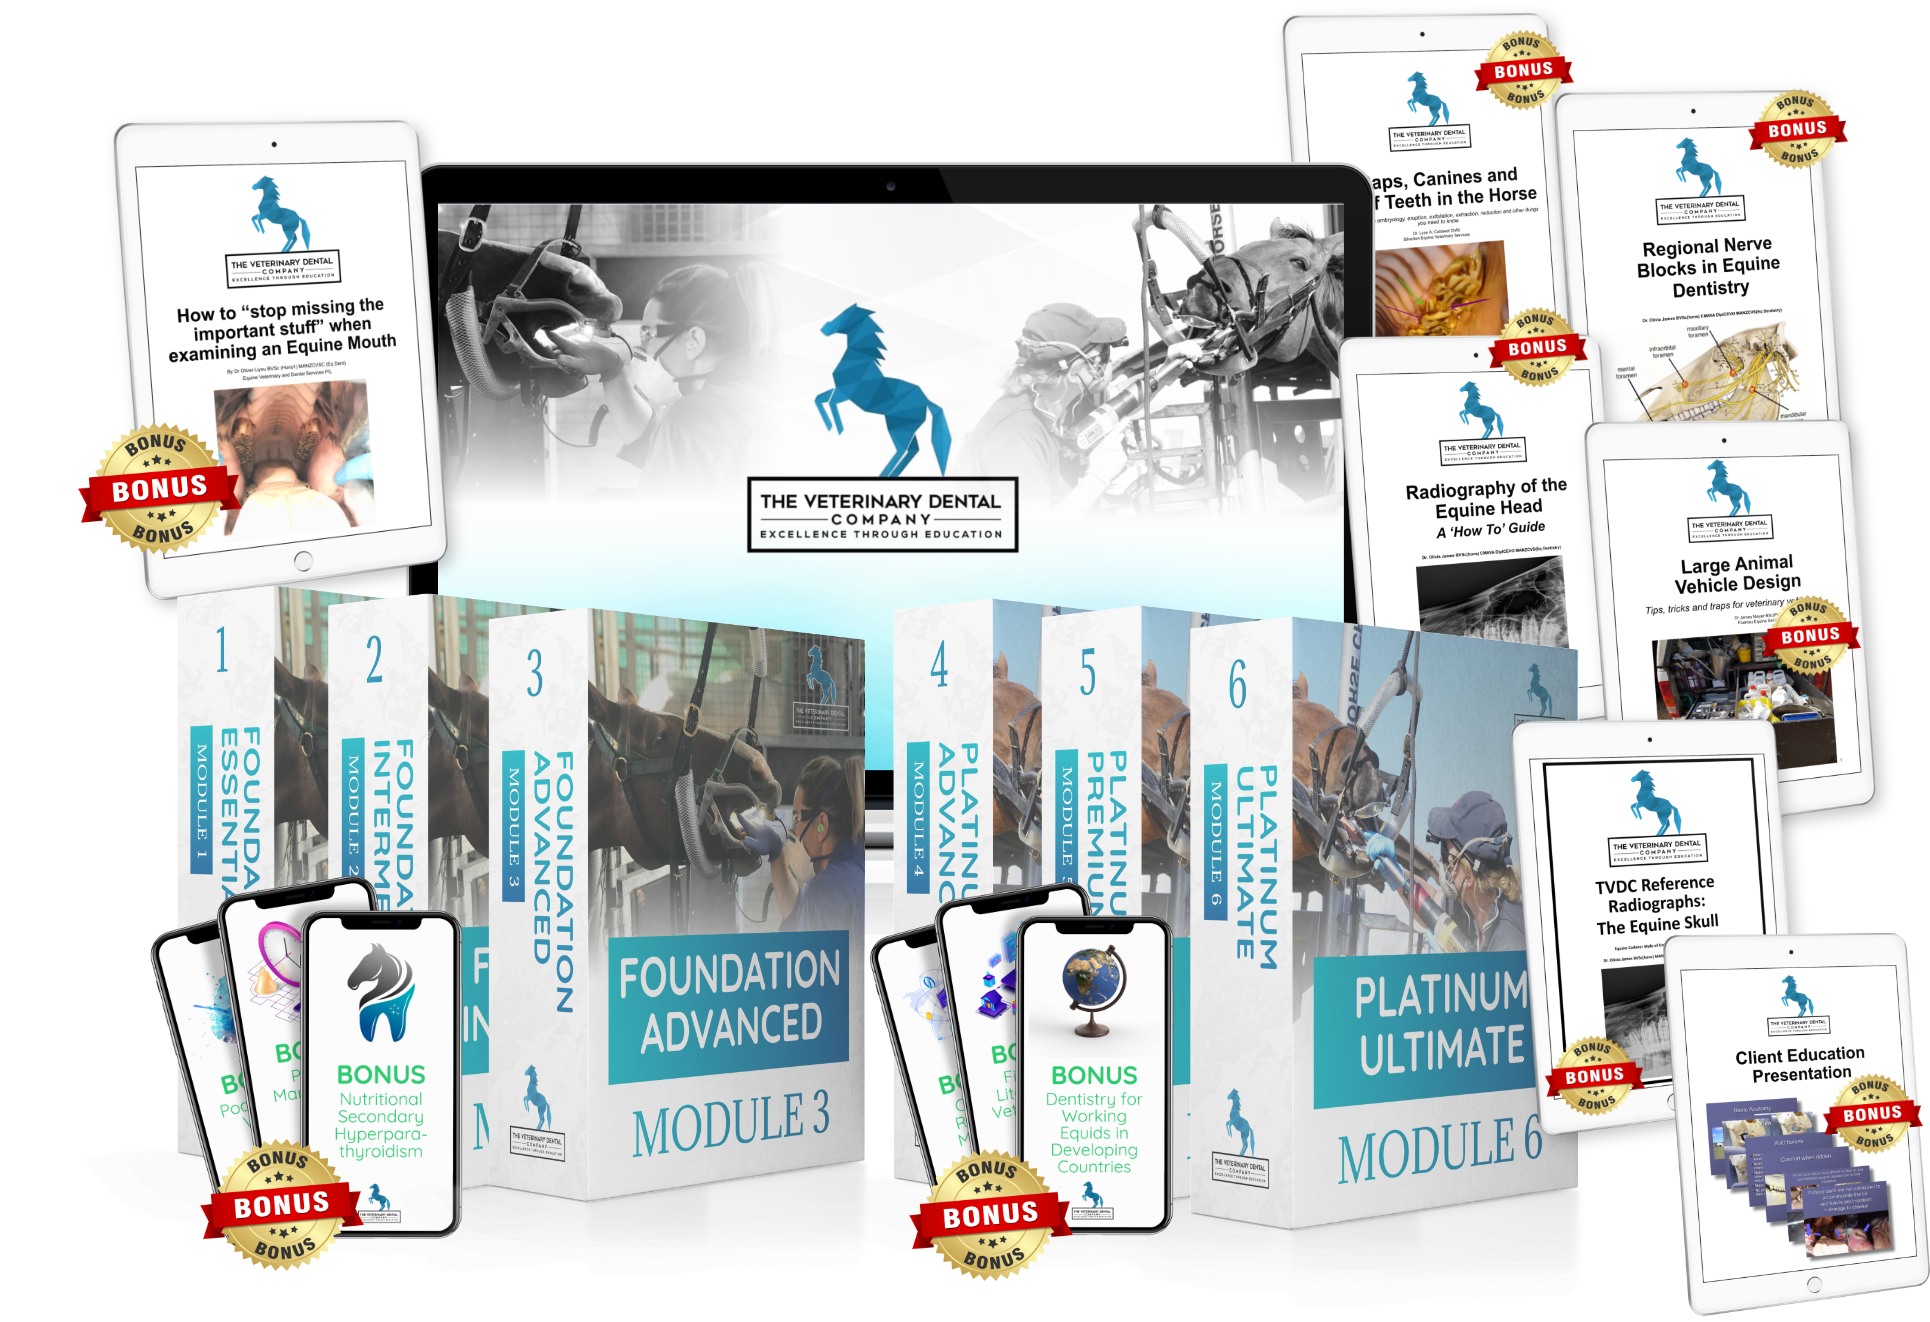 The Veterinary Dental Company mockup for online training in veterinary equine dentistry including ebooks on xrays of the horse skull, equine vehicle design, regional nerve blocks for equine dentistry, caps canines and wolf teeth